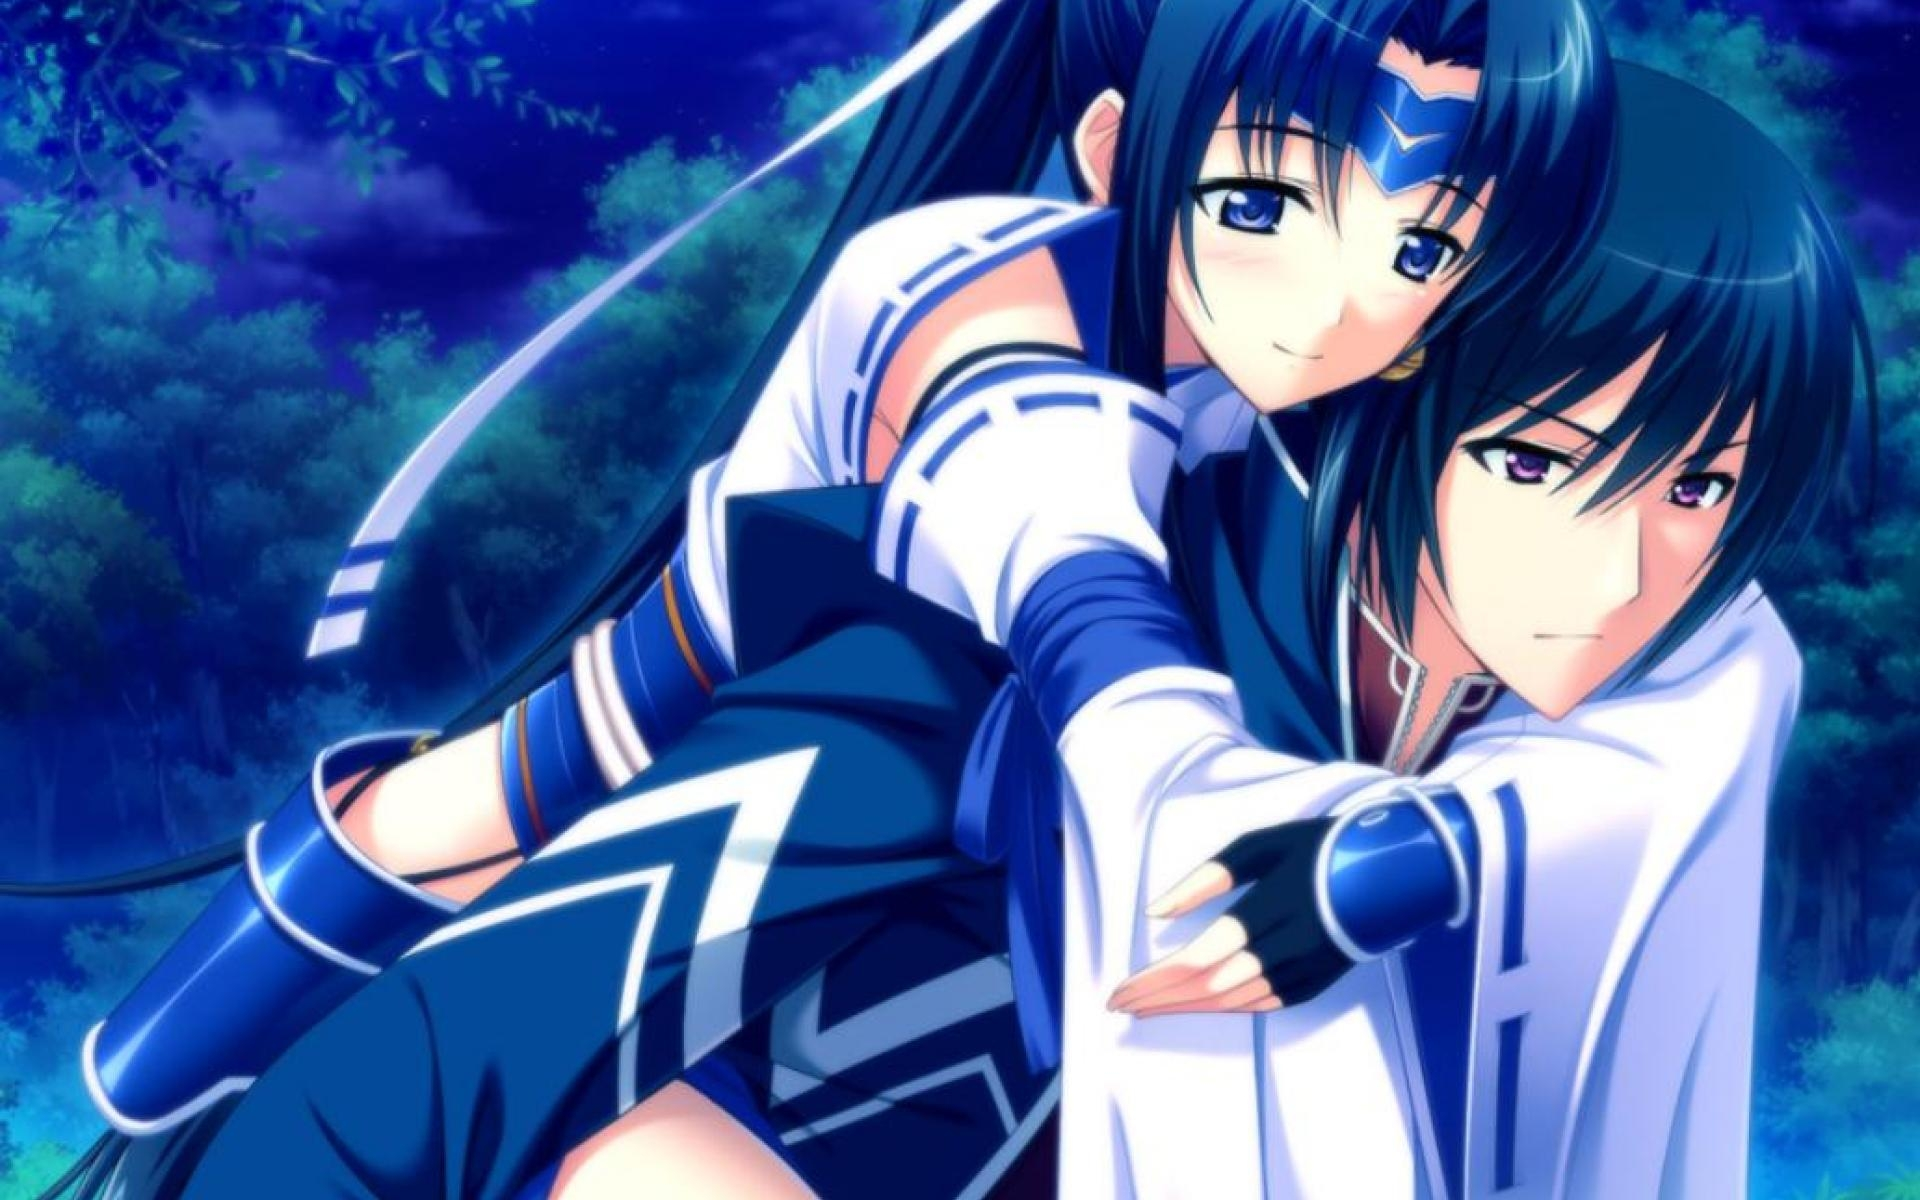 Sweet Anime Couple Hd Wallpaper M9themes Gambar Hd Anime